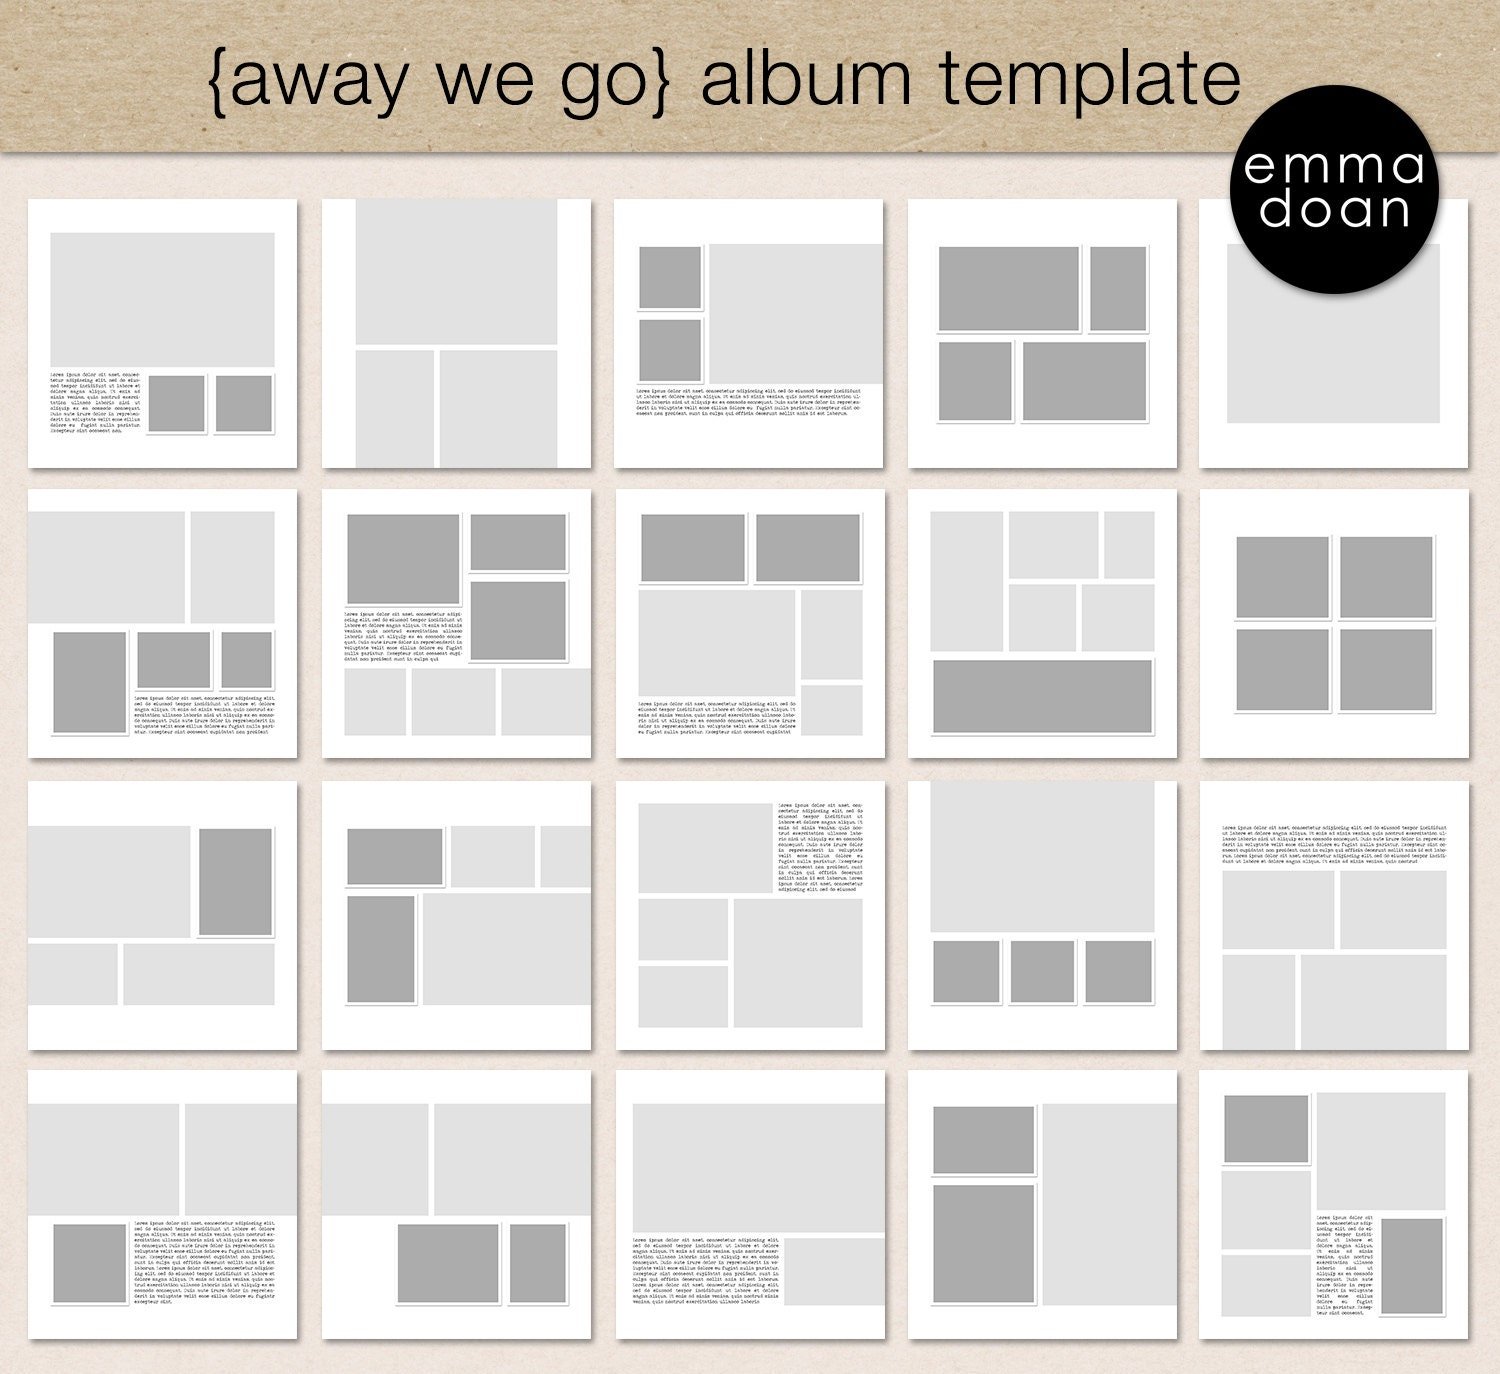 Wanderlust album template 12x12 travel album 12x12 photobook away we go album template 12x12 travel album 12x12 photobook template digital scrapbook template photo collage album template pronofoot35fo Gallery